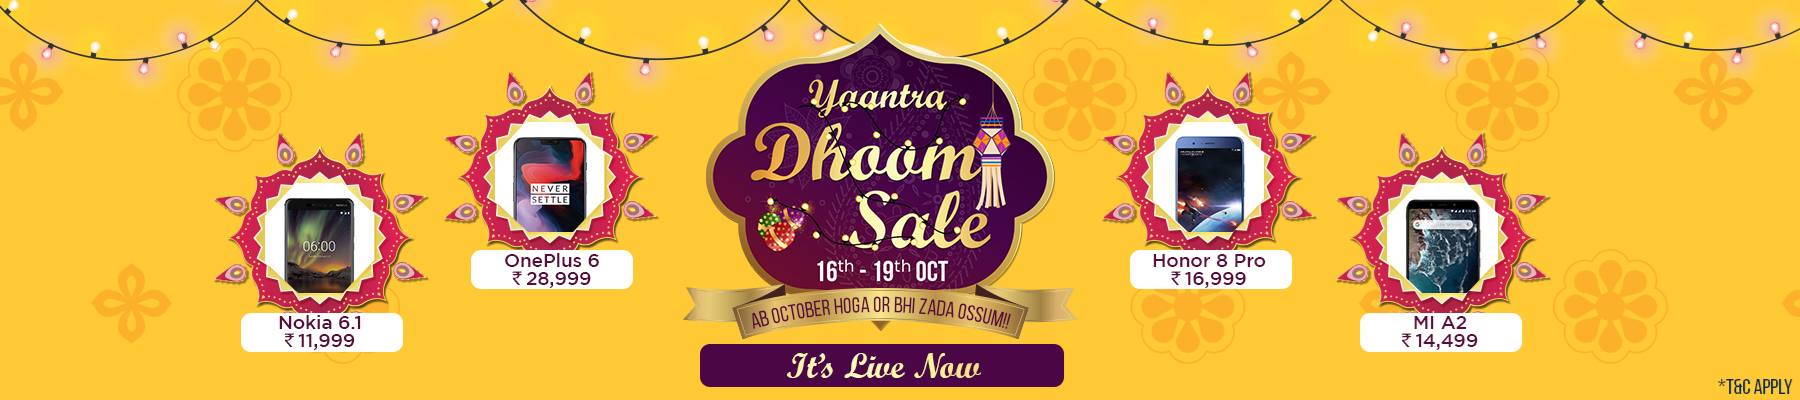 yaantra offer banner